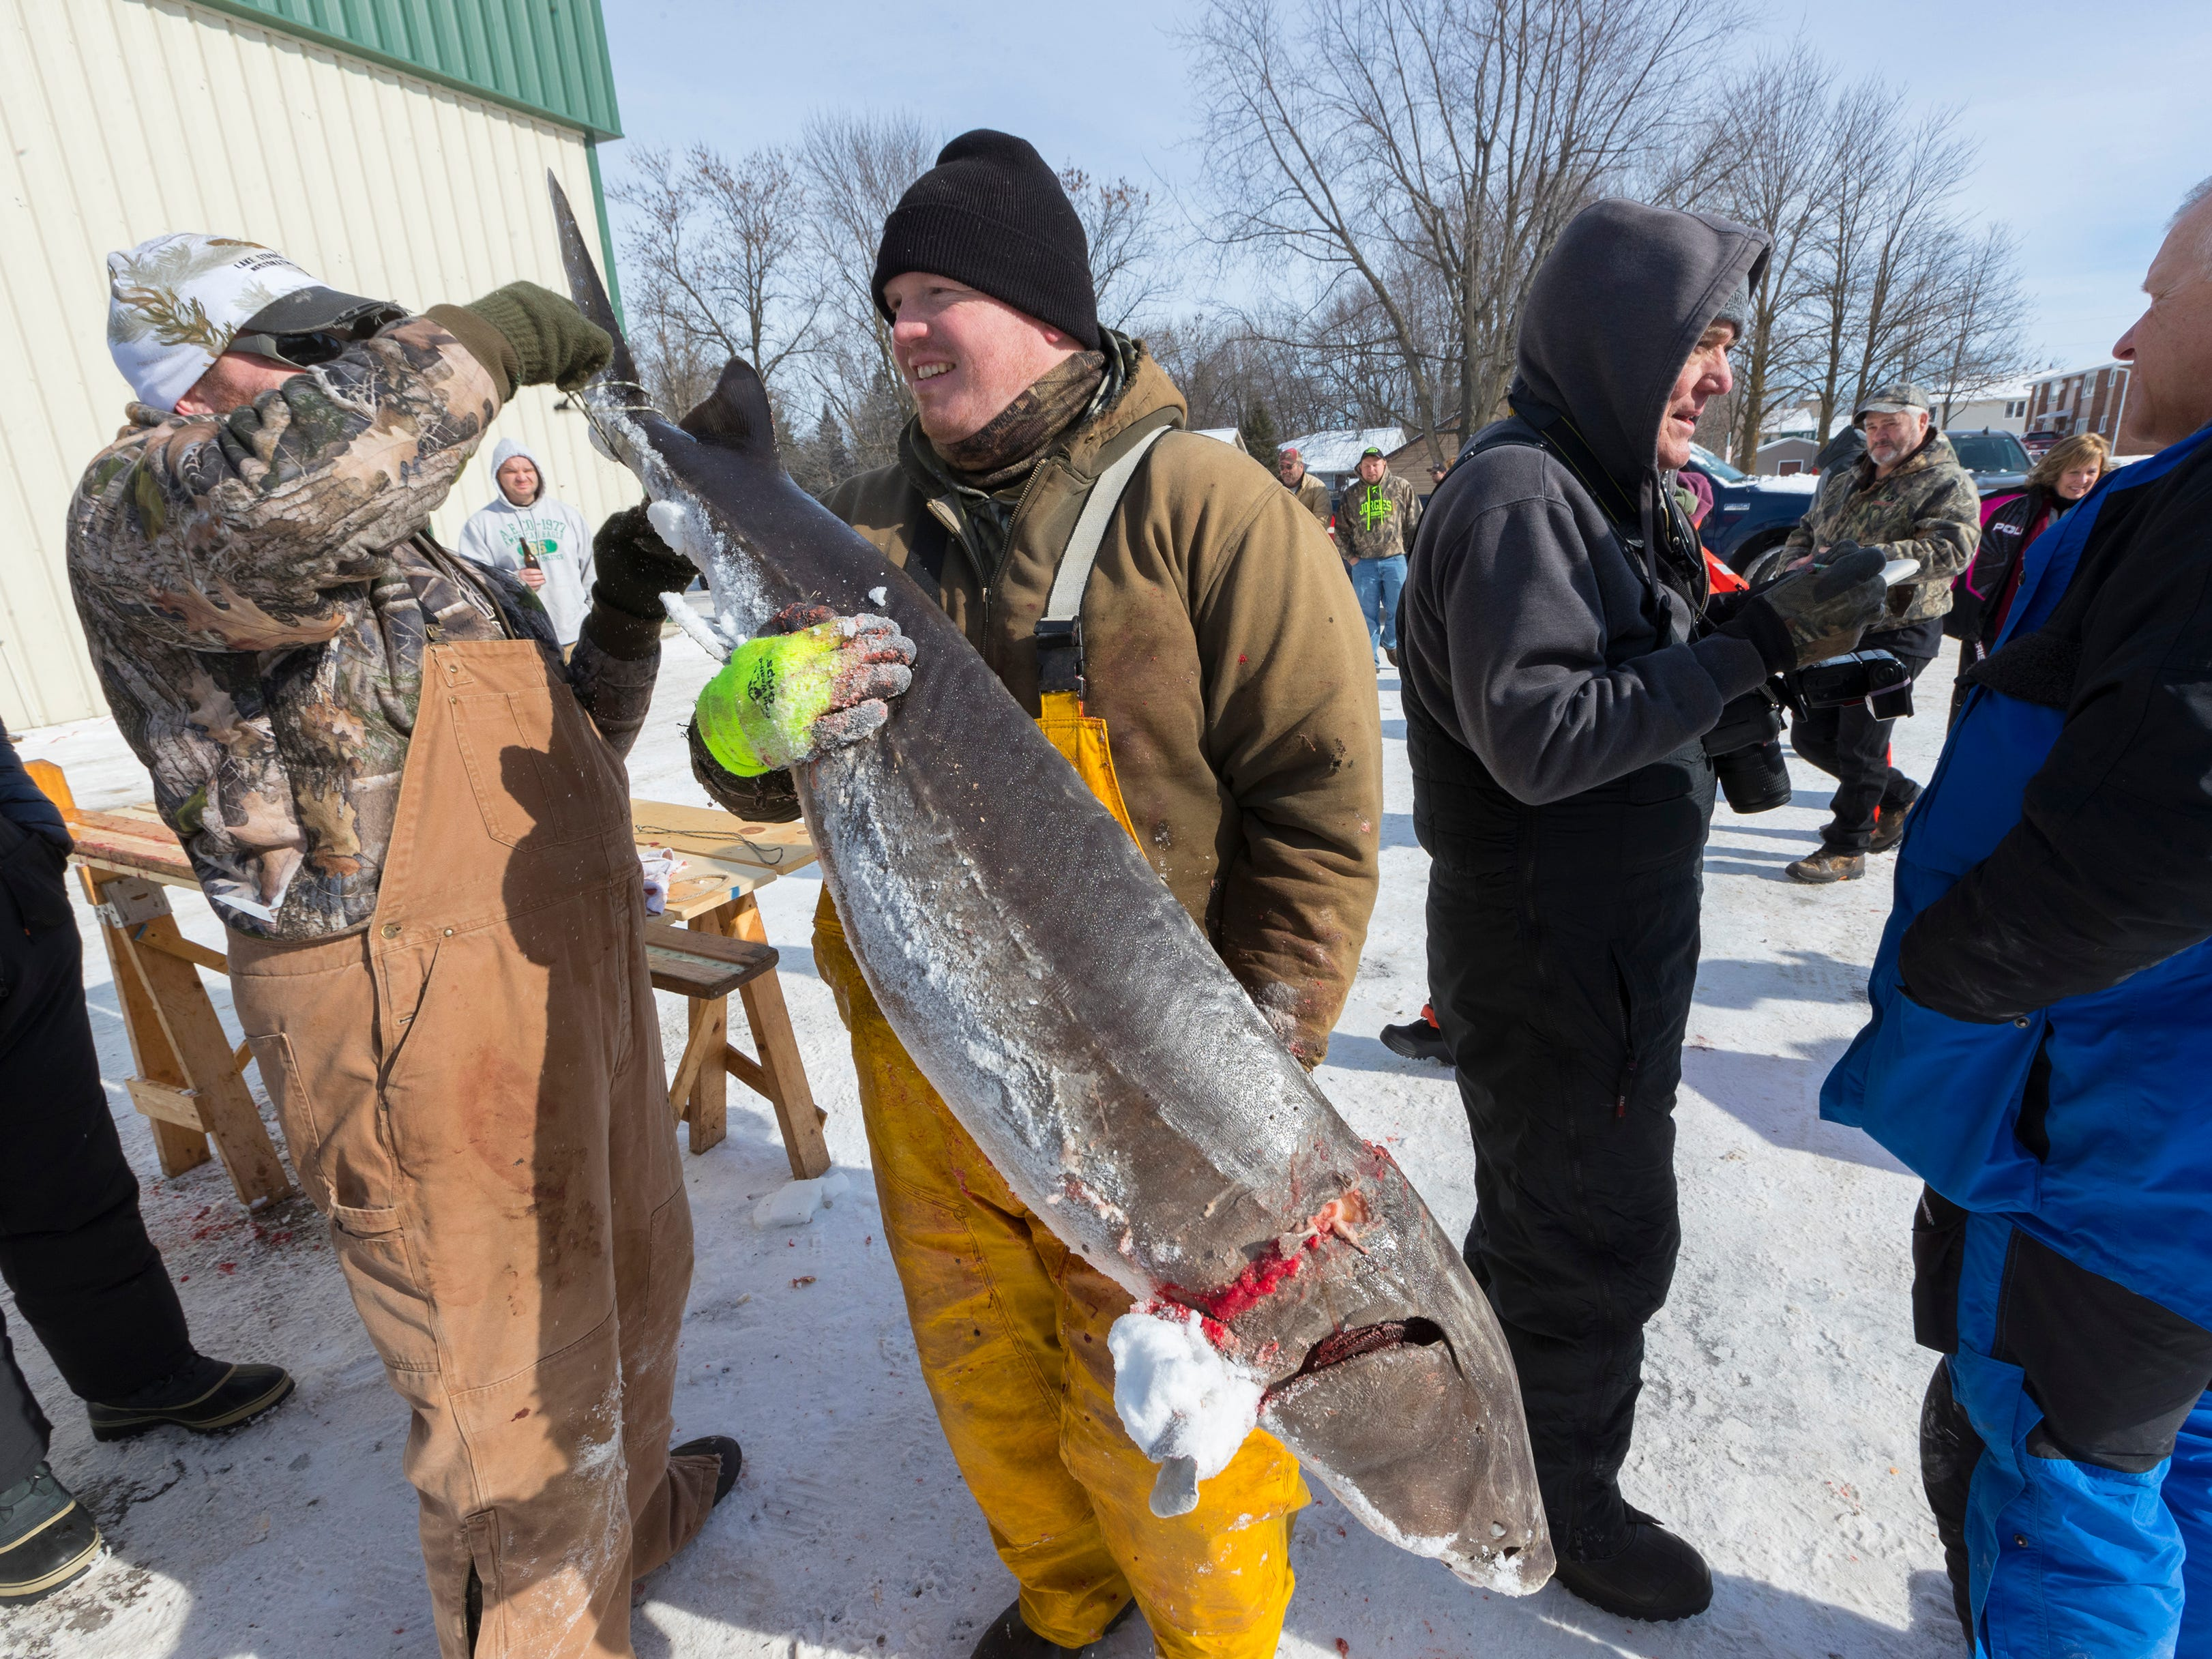 Dan Dembkowski, a volunteer student from UW-Stevens Point, carries a fish to be weighed and registered during the opening day of sturgeon spearing Saturday, Feb. 9, 2019, at Critter's in Winneconne, Wis.